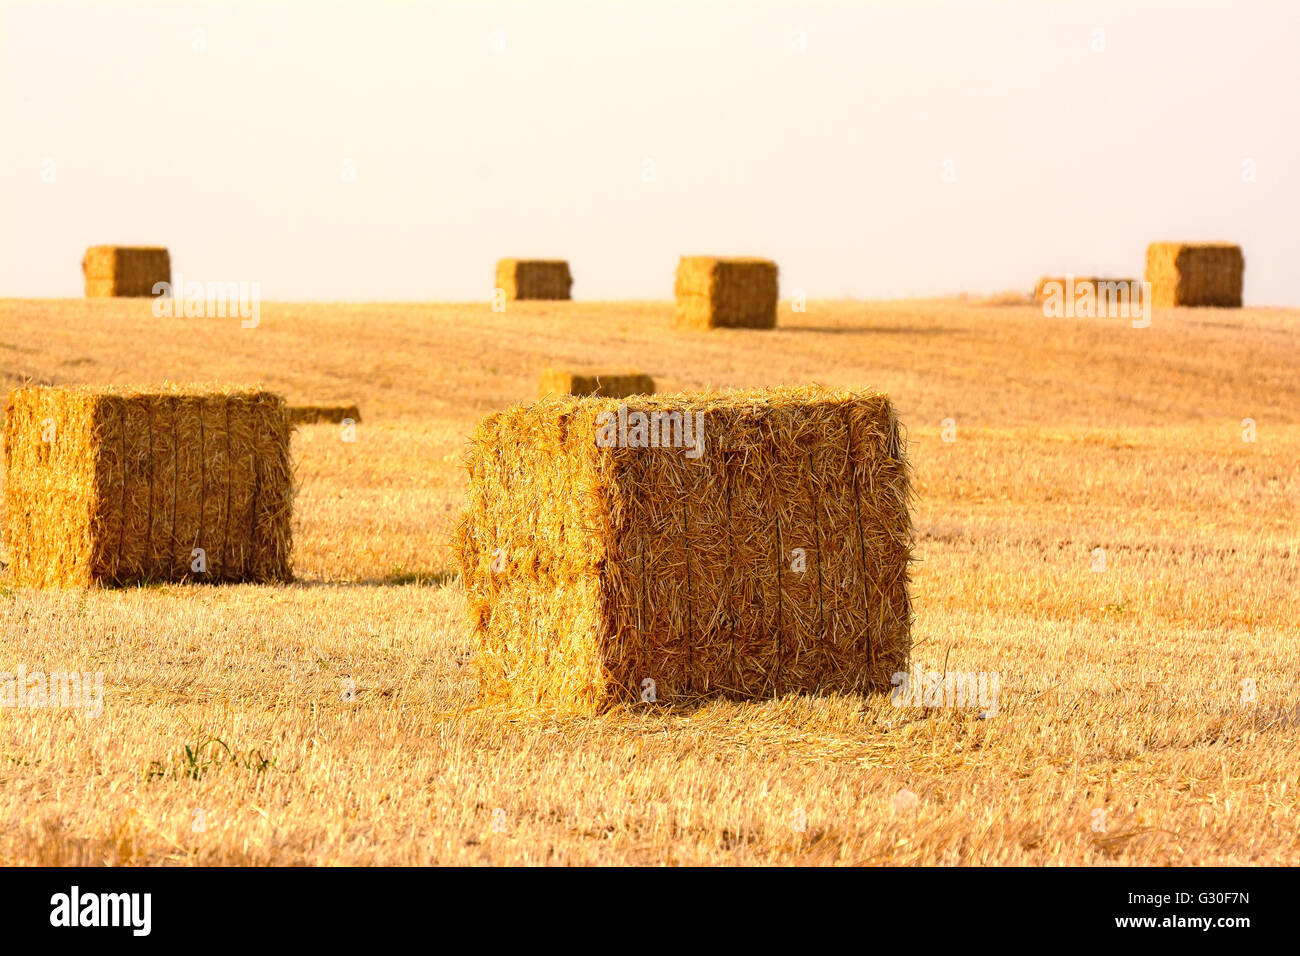 hay bales in the field - Stock Image